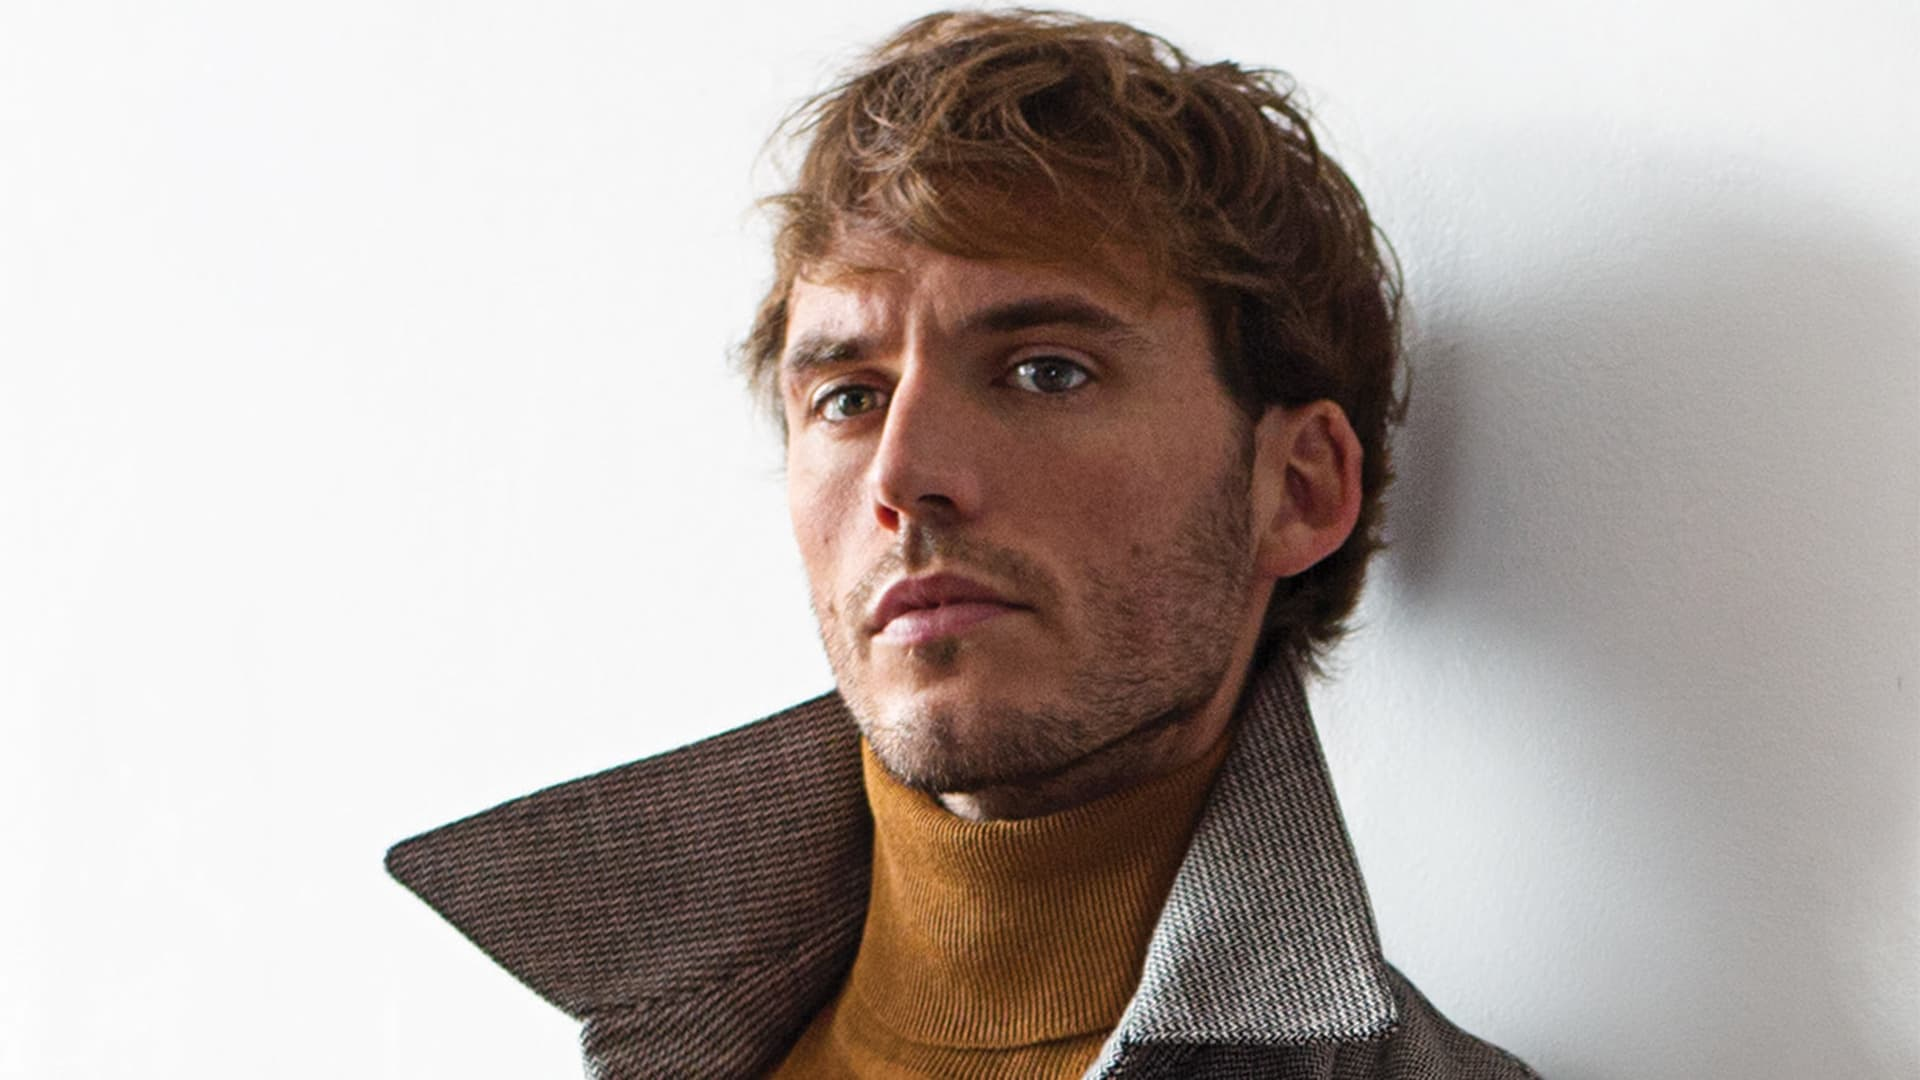 16 Sam Claflin Wallpapers Hd High Quality Download